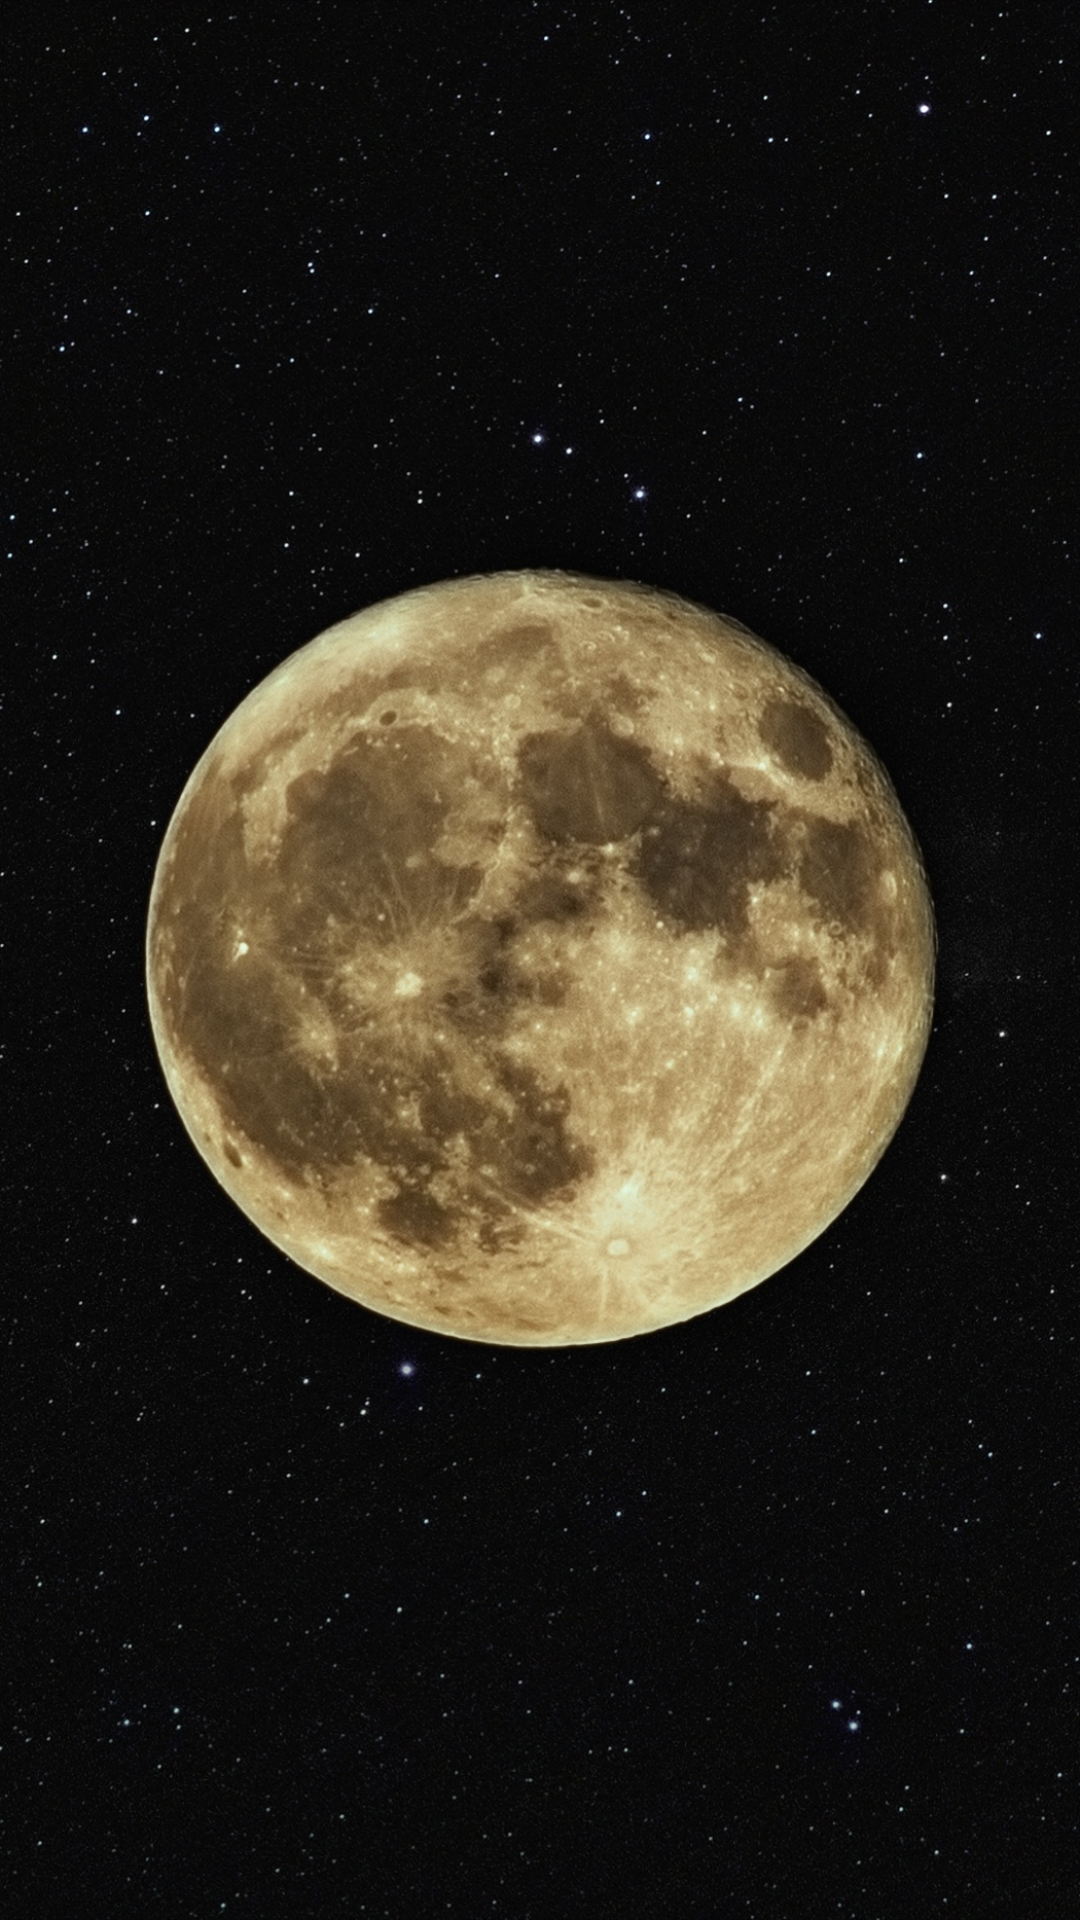 Earth Moon 1080x1920 Wallpaper ID 668098